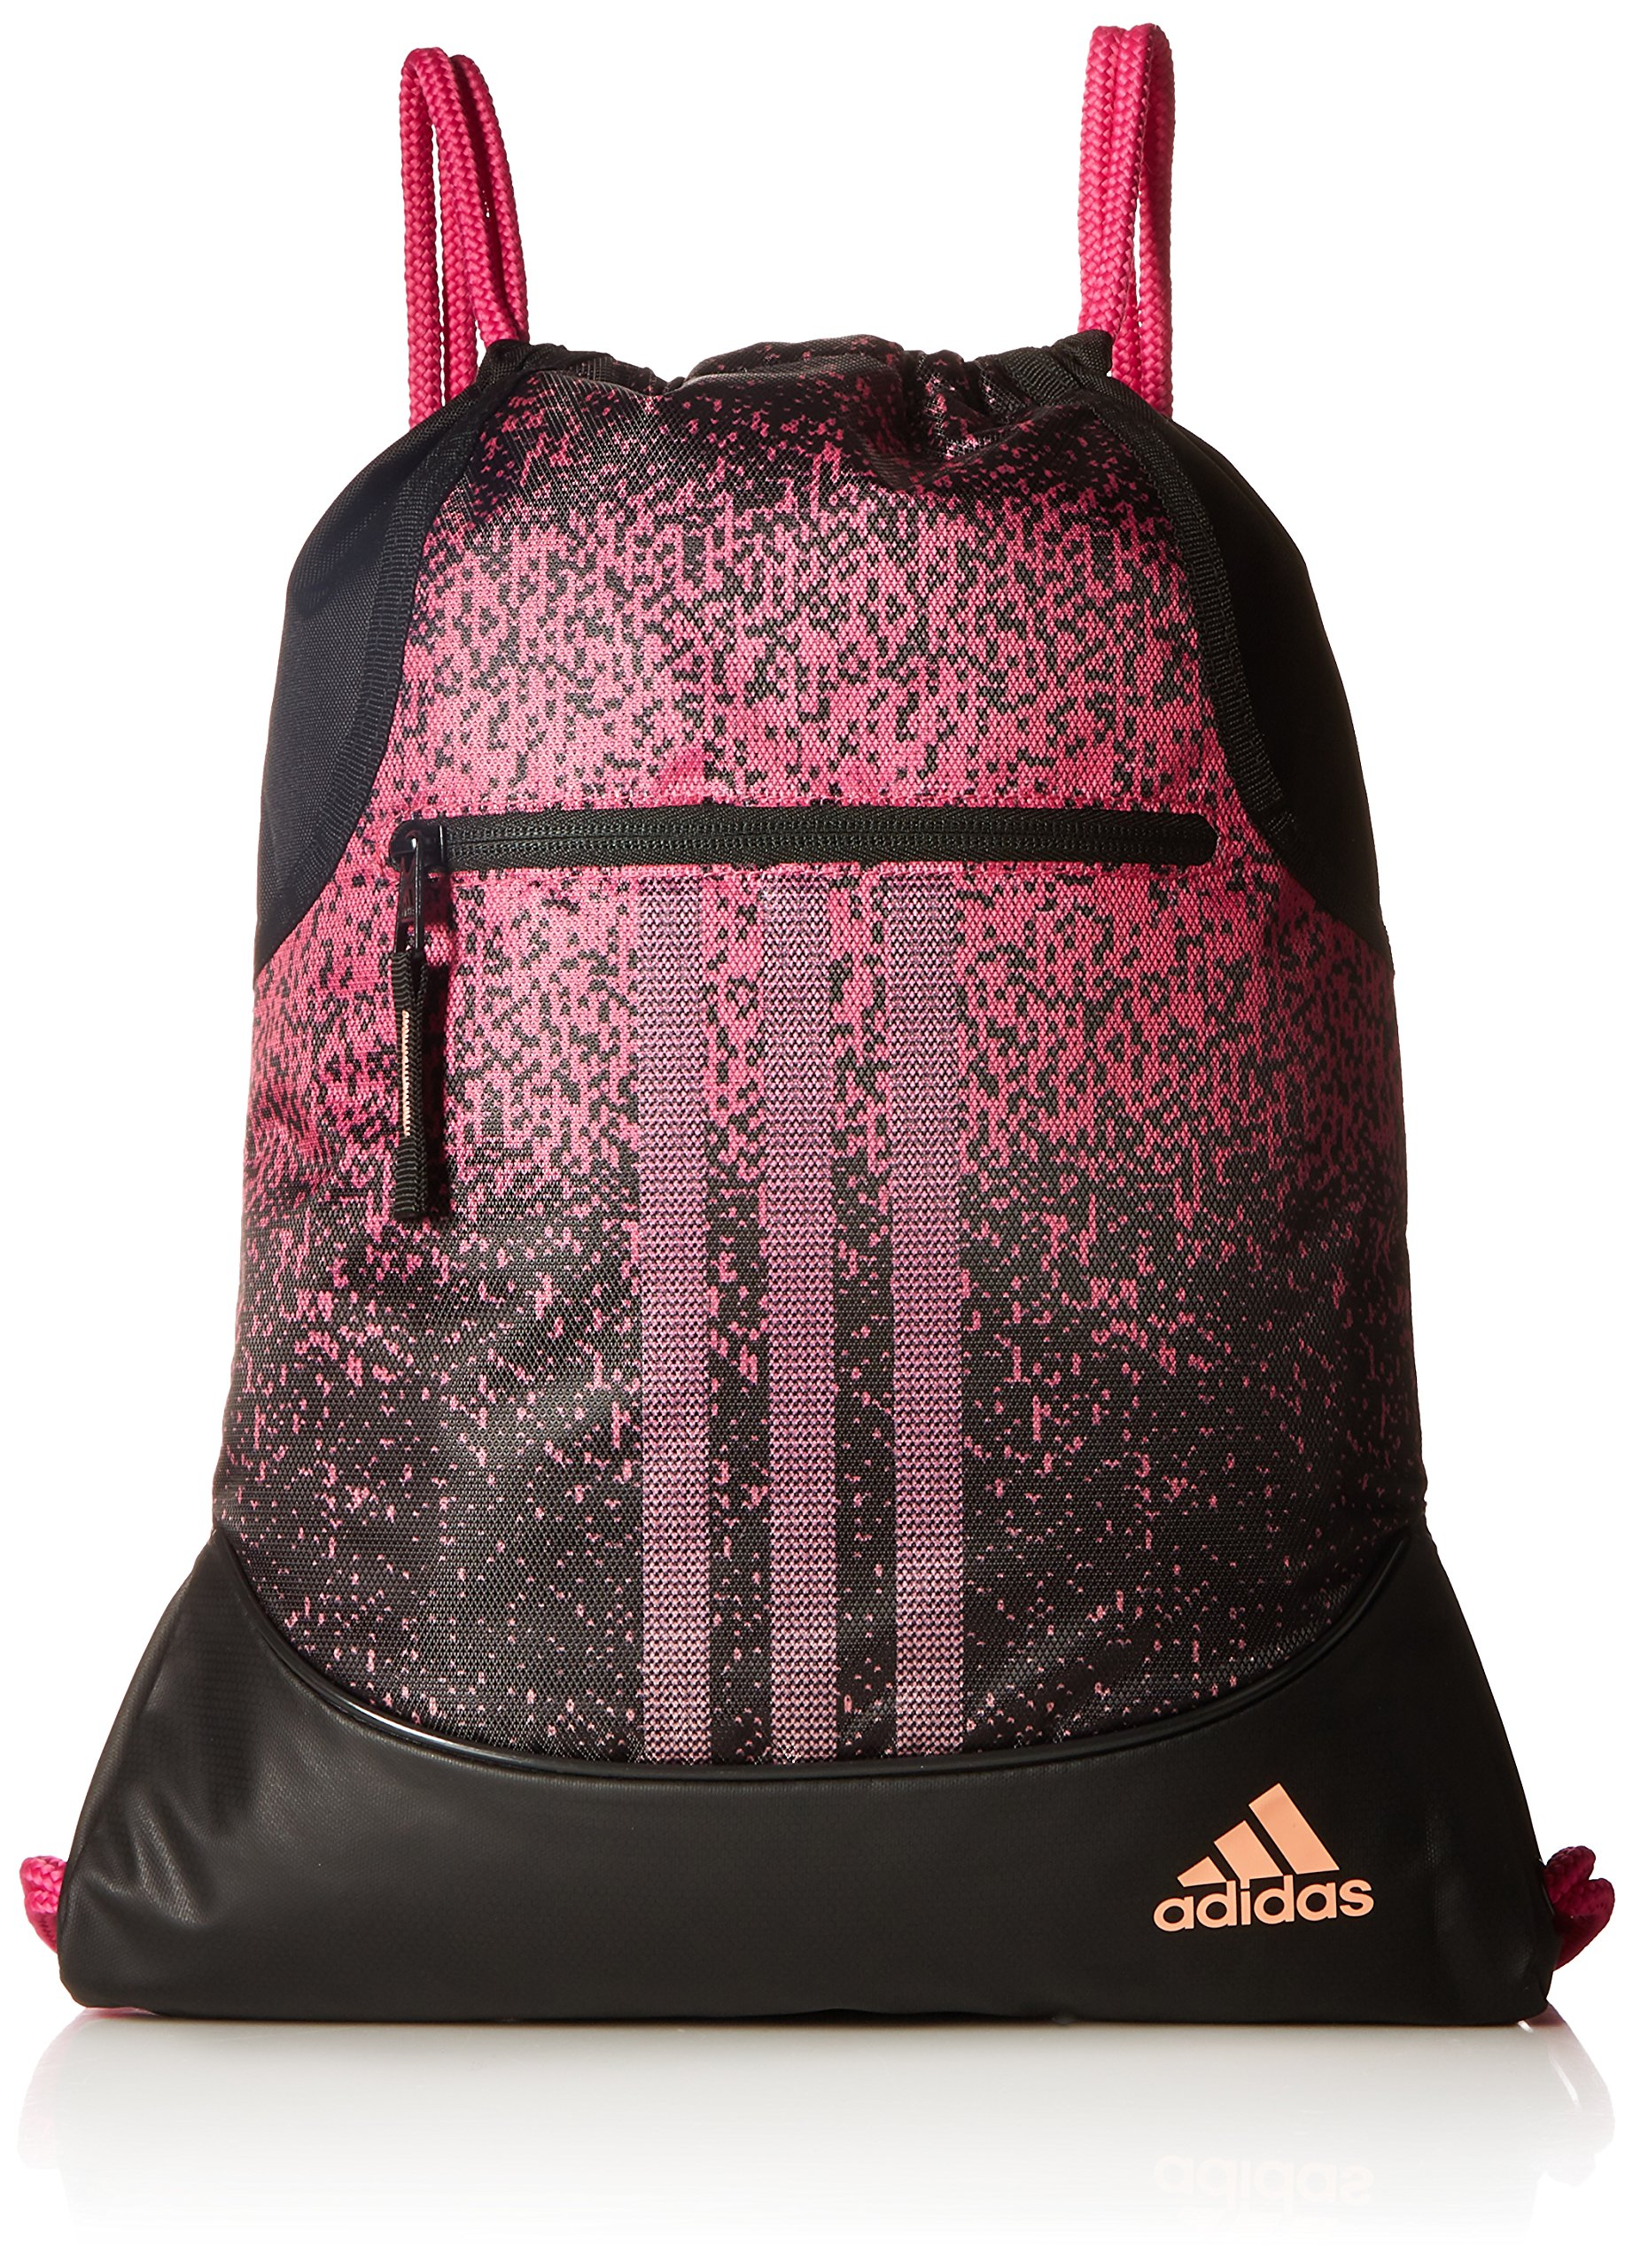 adidas Alliance sublimated prime sackpack, Bahia Magenta/Black/Chalk Coral, One Size